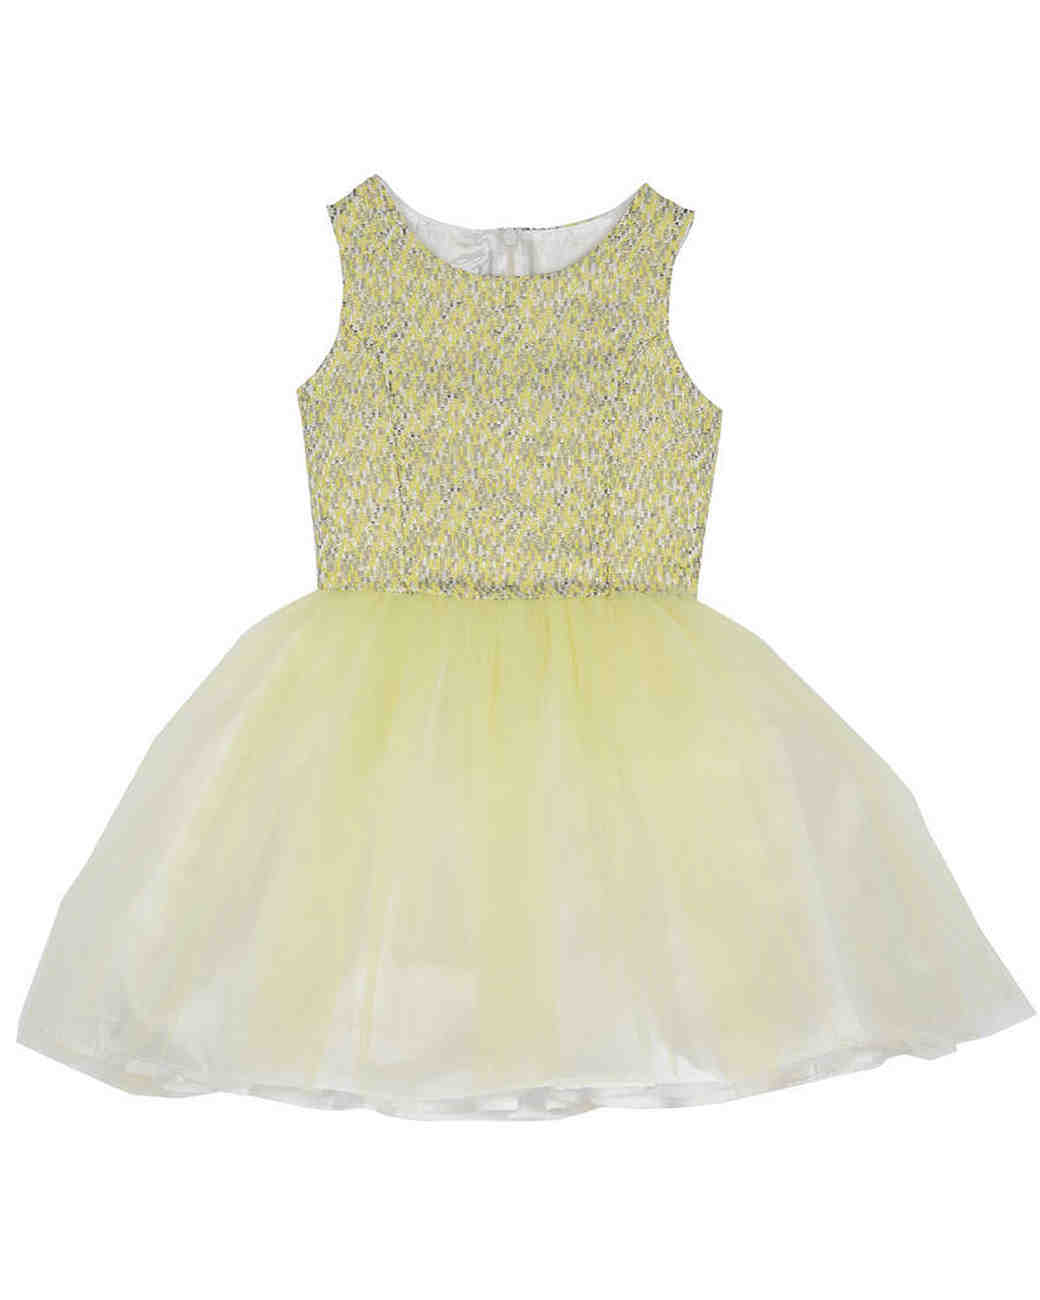 flower-girl-dress-pippa-and-julie-yellow-brocade-0316.jpg